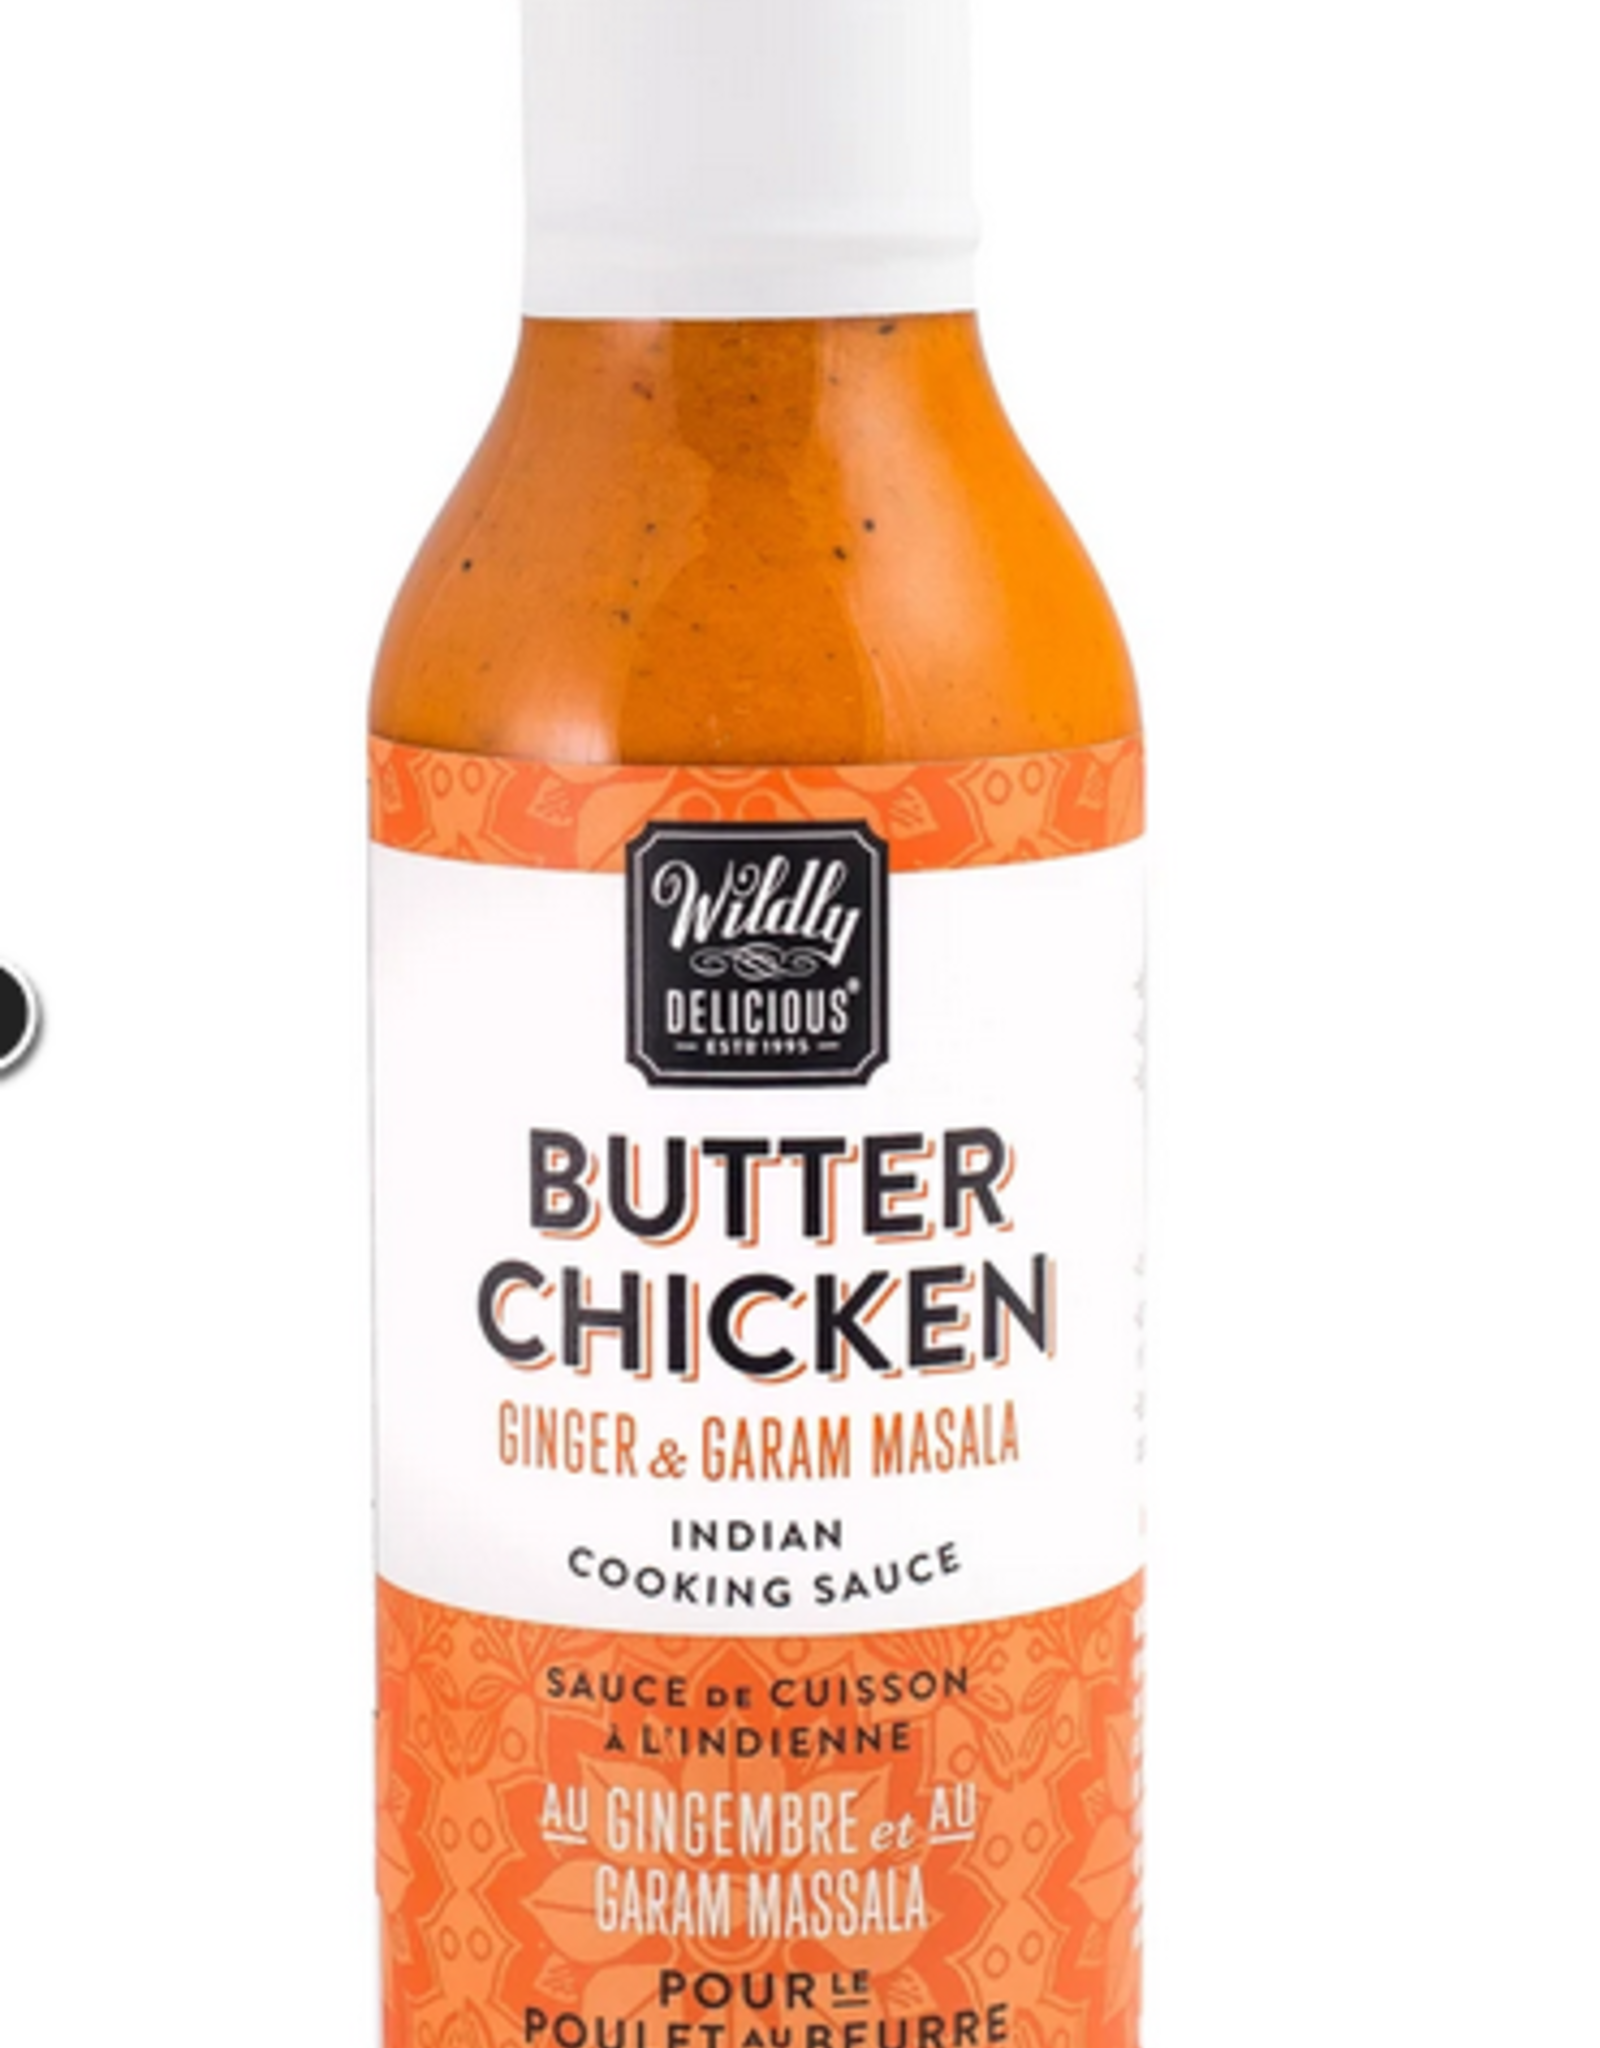 Wildly Delicious Butter Chicken Indian Cooking Sauce